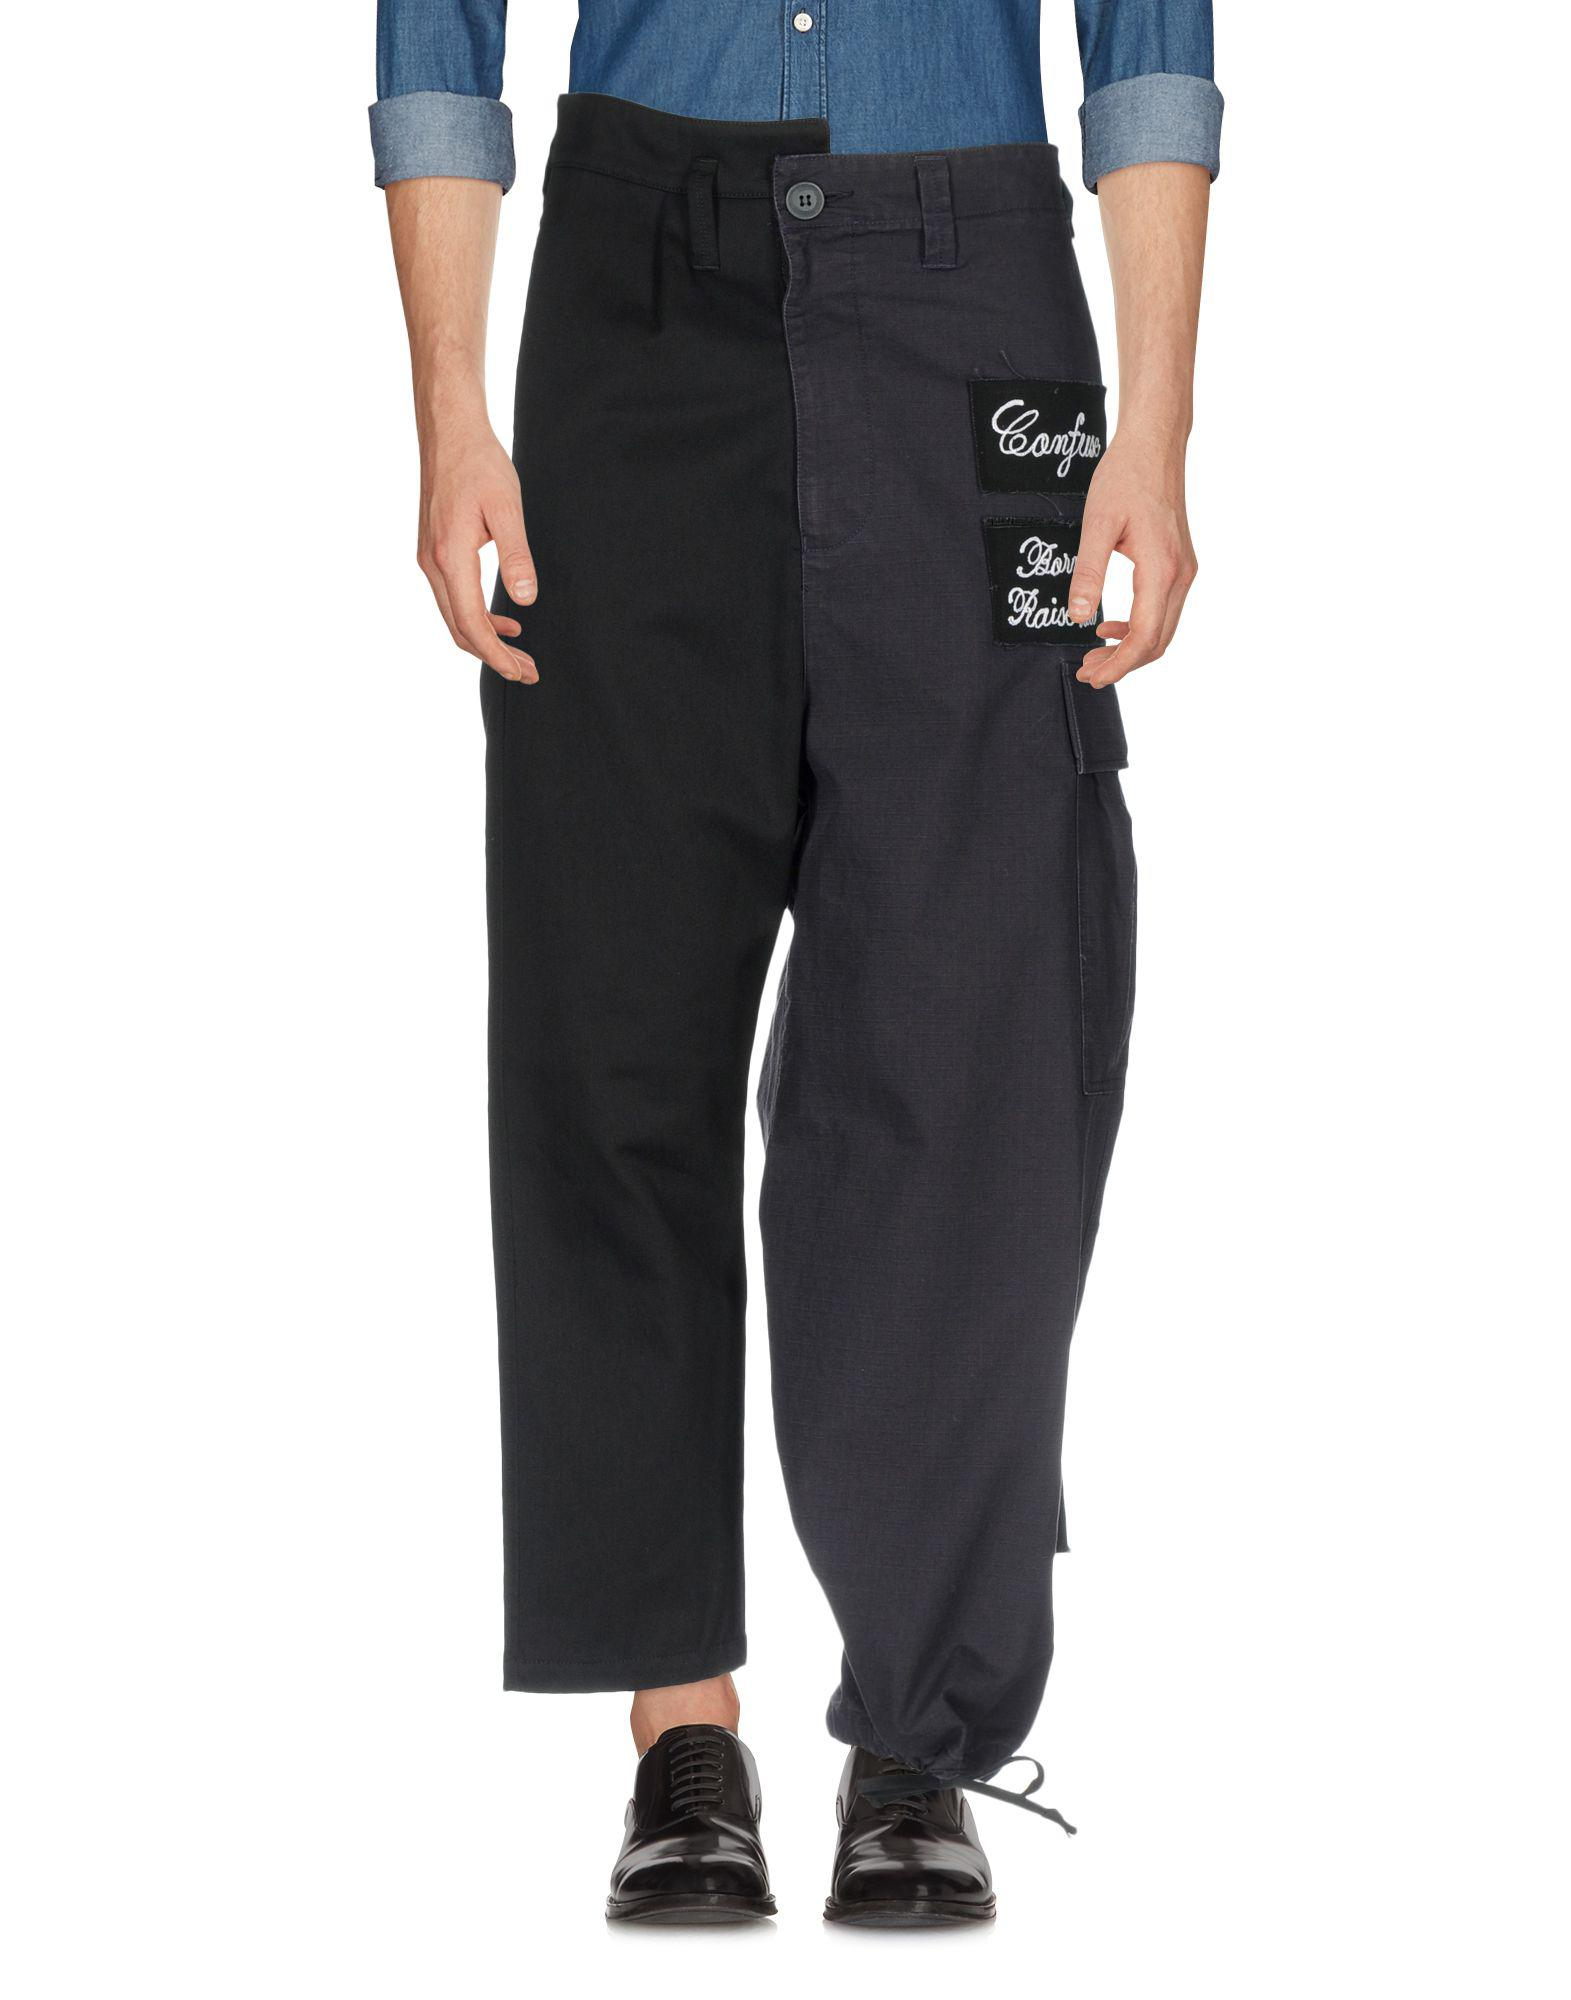 Clearance Store Cheap Price TROUSERS - Casual trousers Miharayasuhiro Cheap Sale The Cheapest Cheap Shopping Online Clearance Low Shipping Fee LF9WkkOIbC